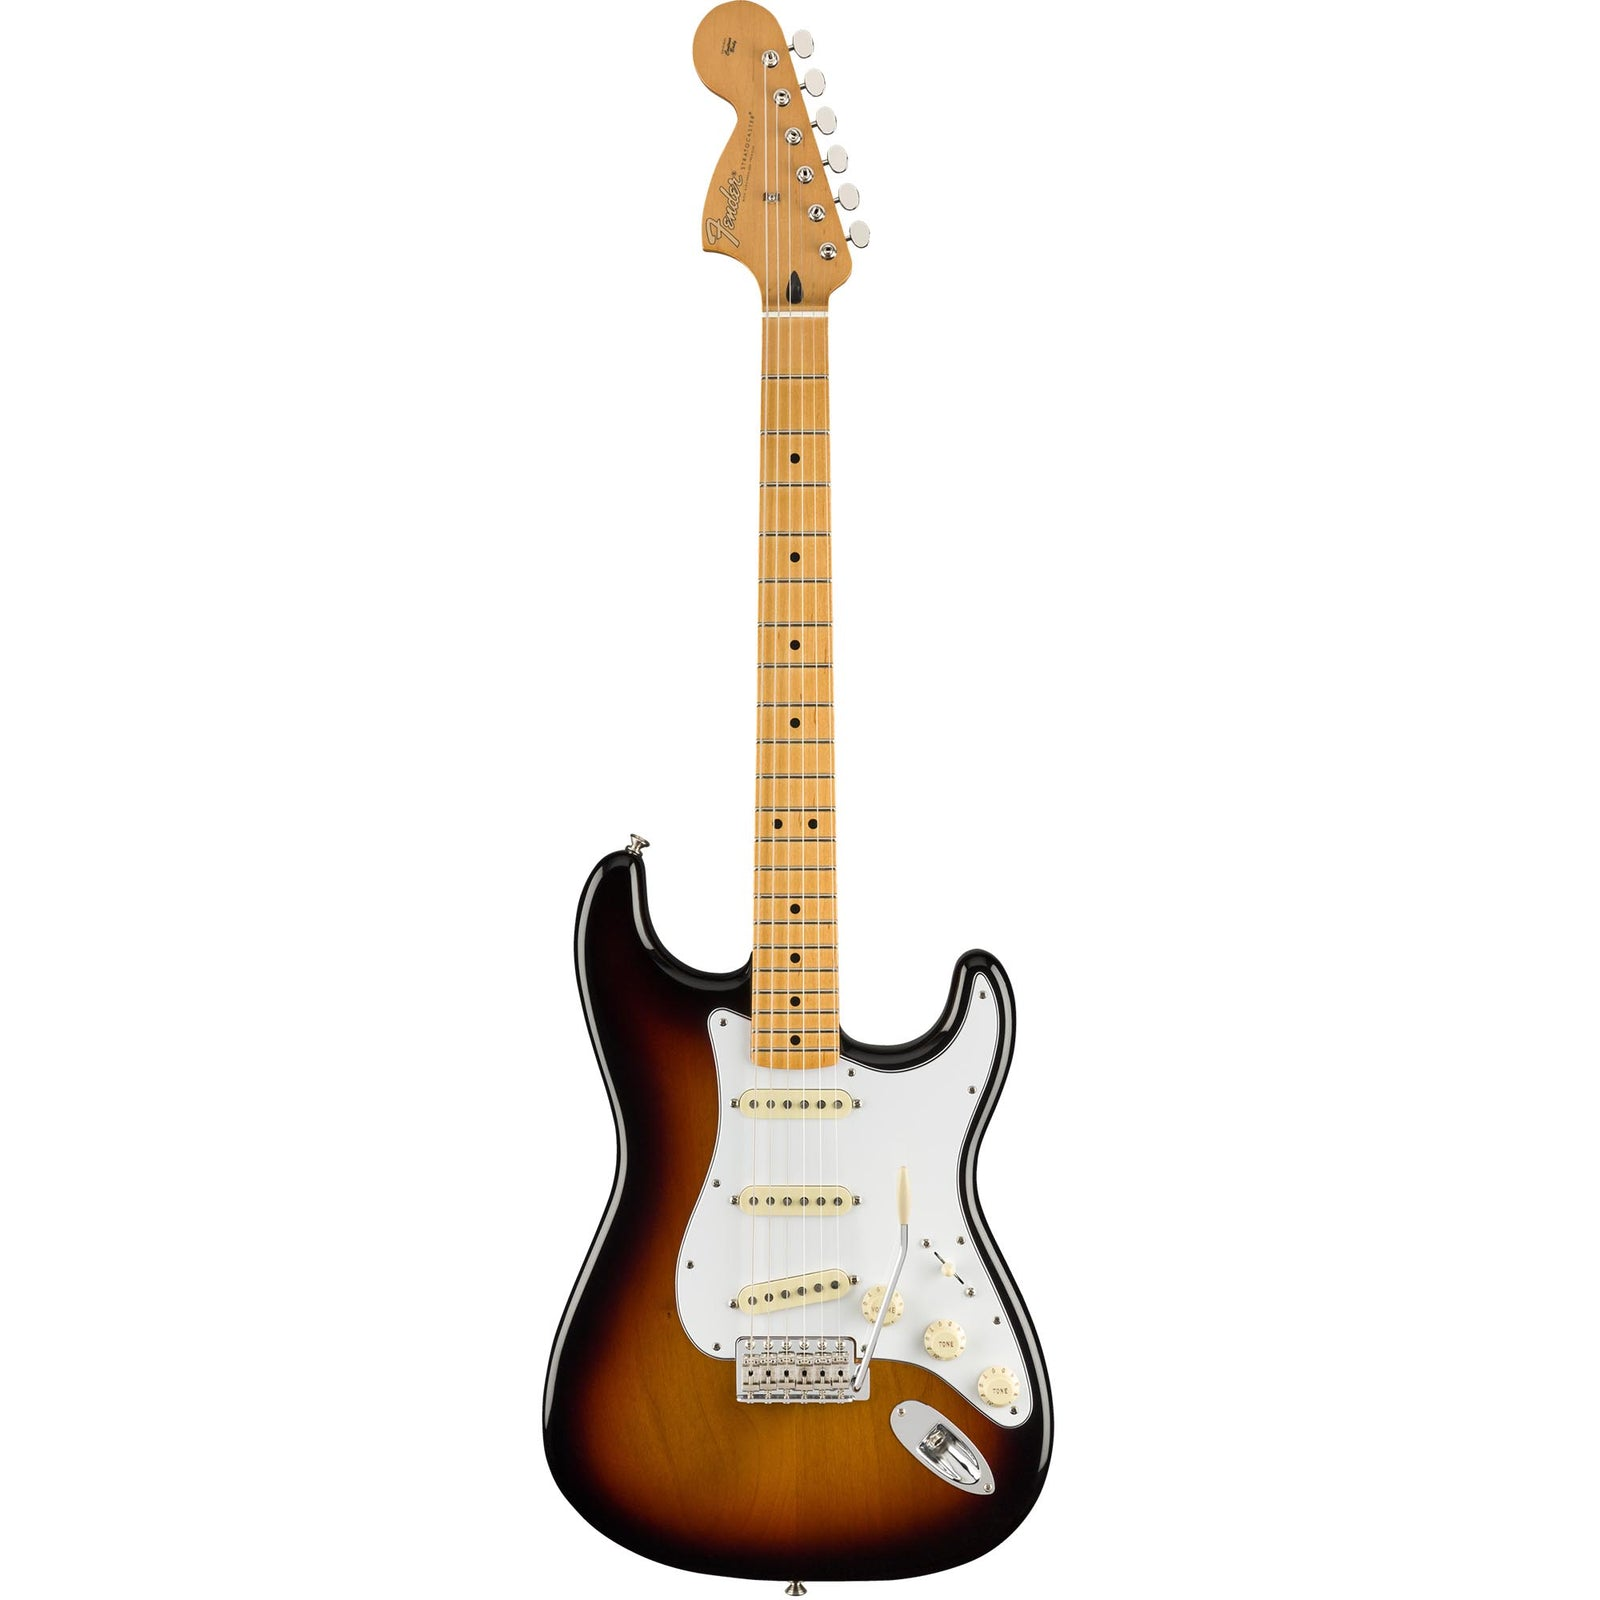 Fender Jimi Hendrix Stratocaster - Maple Fingerboard - 3 Color Sunburst